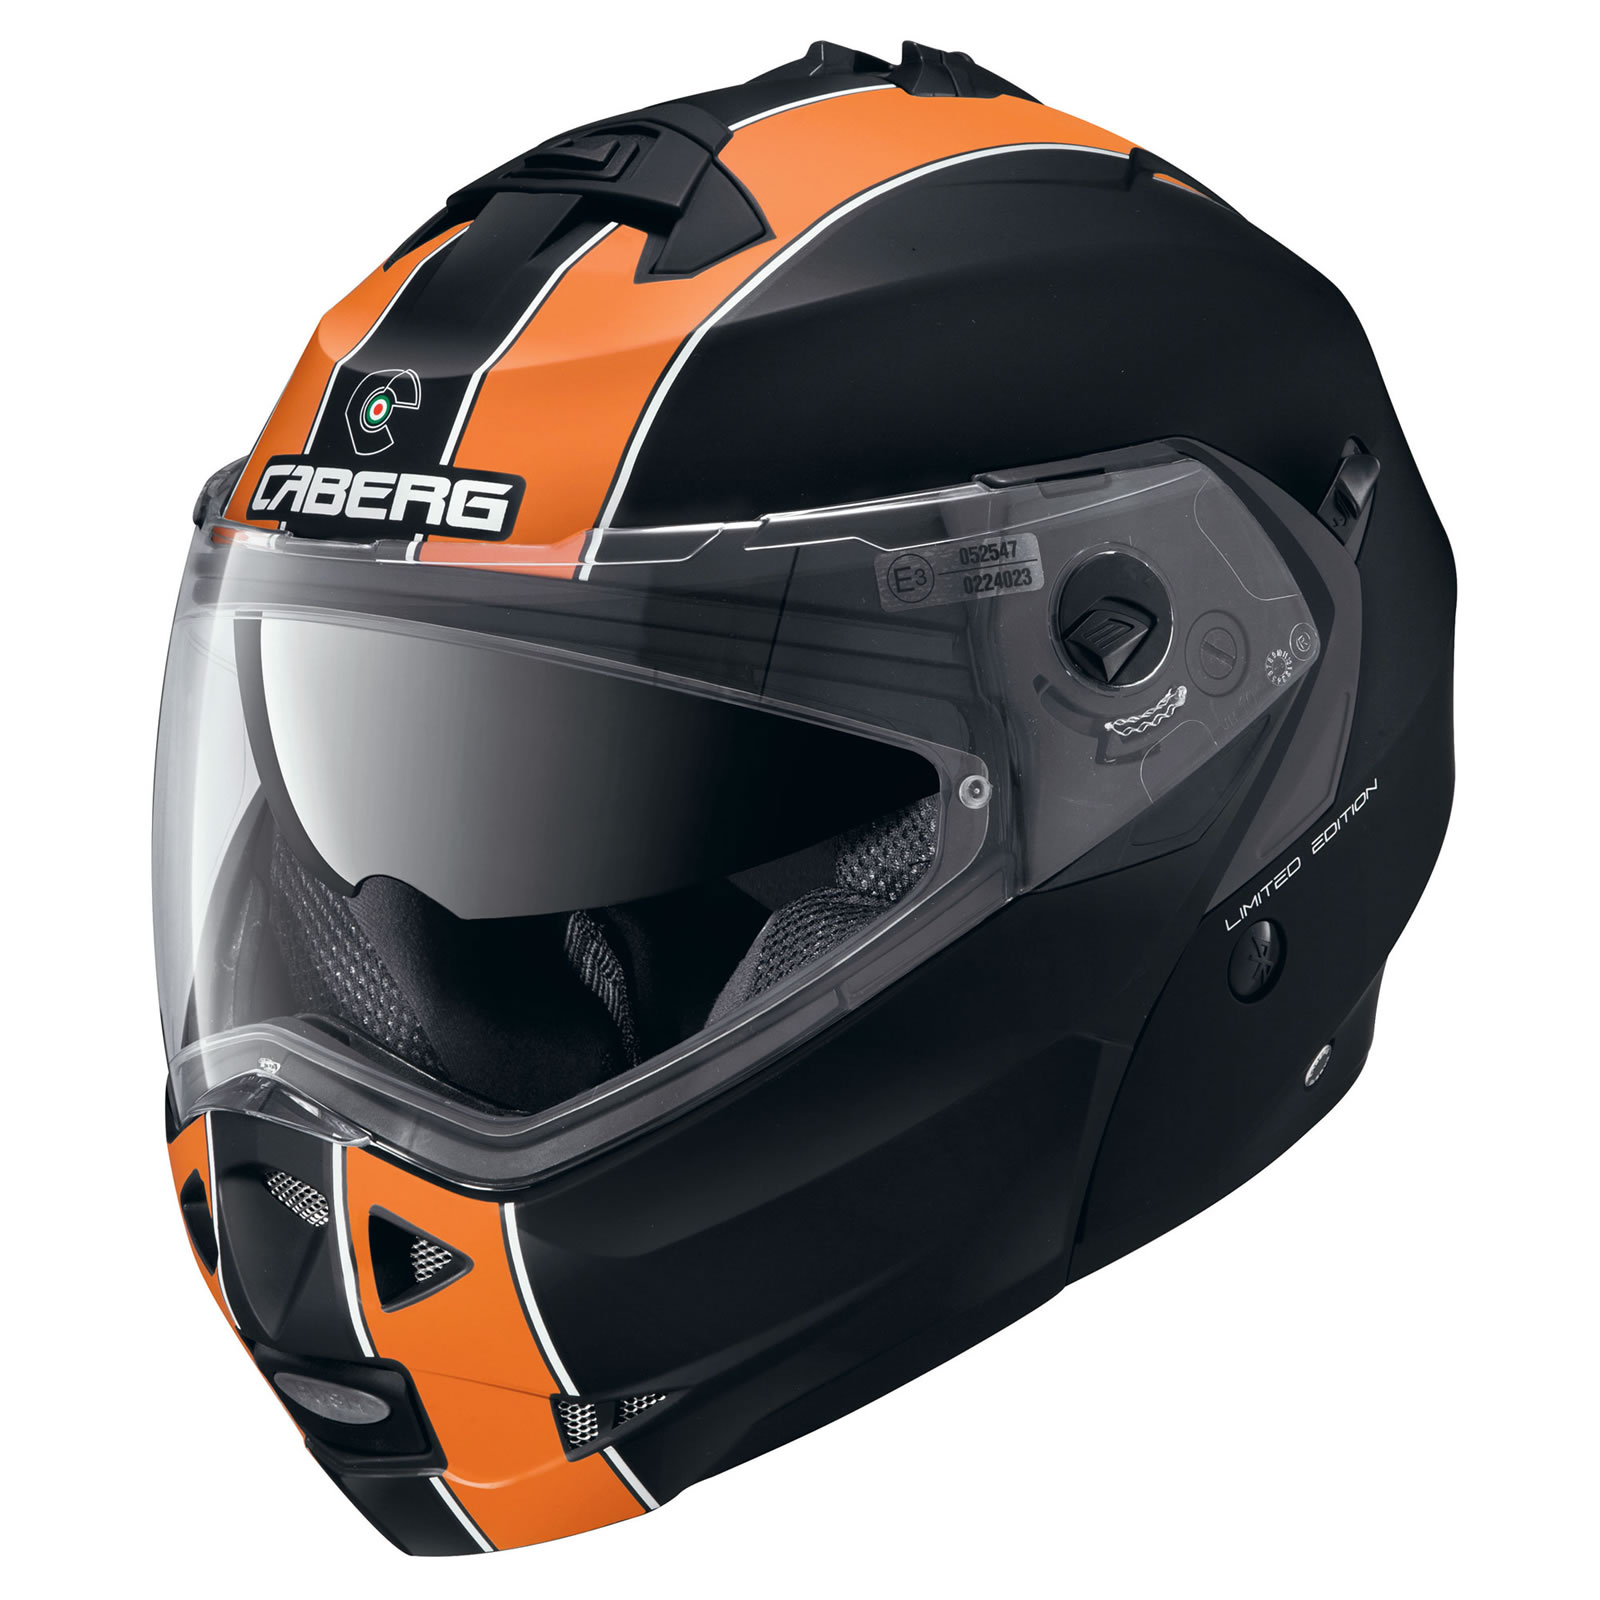 caberg duke legend matt black orange motorcycle helmet. Black Bedroom Furniture Sets. Home Design Ideas